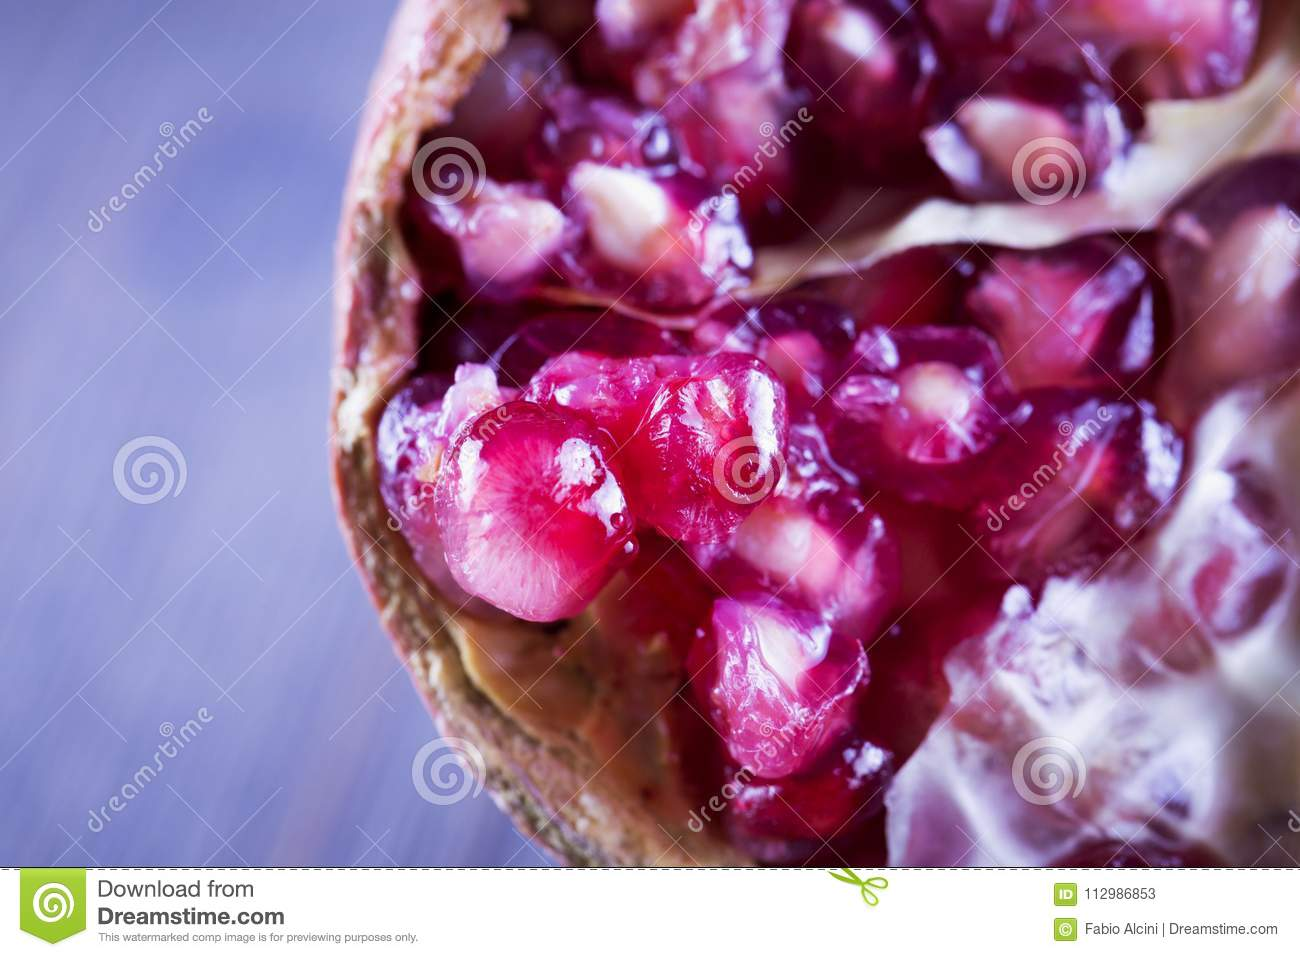 Pomegranate in strict close up